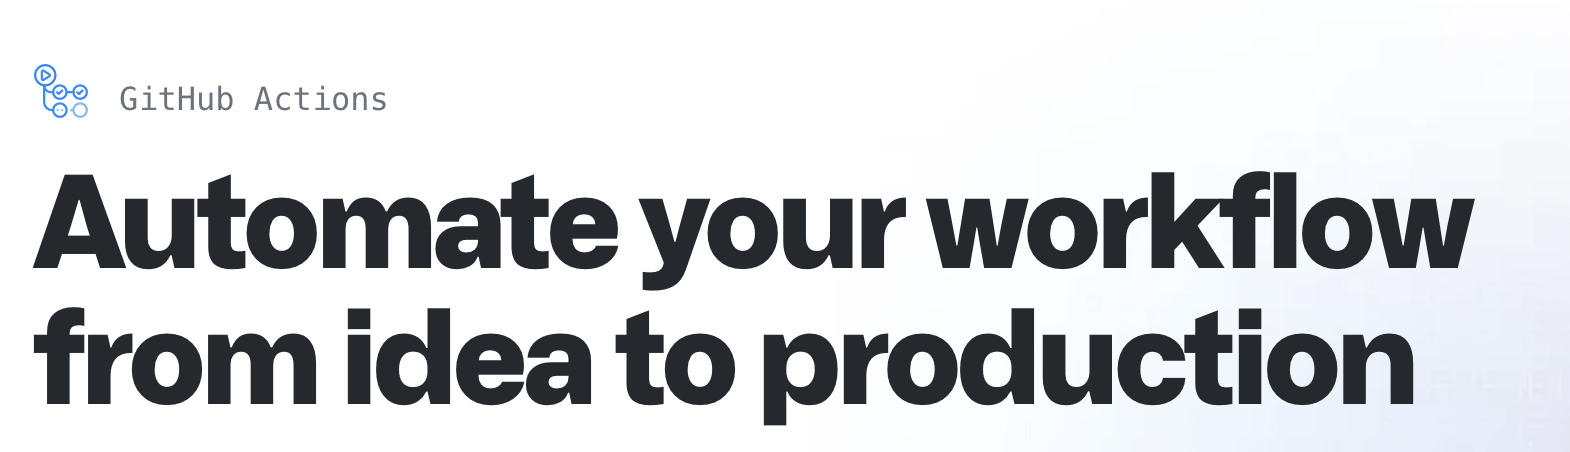 GitHub Actions header readers, 'Automate your workflow from idea to production'